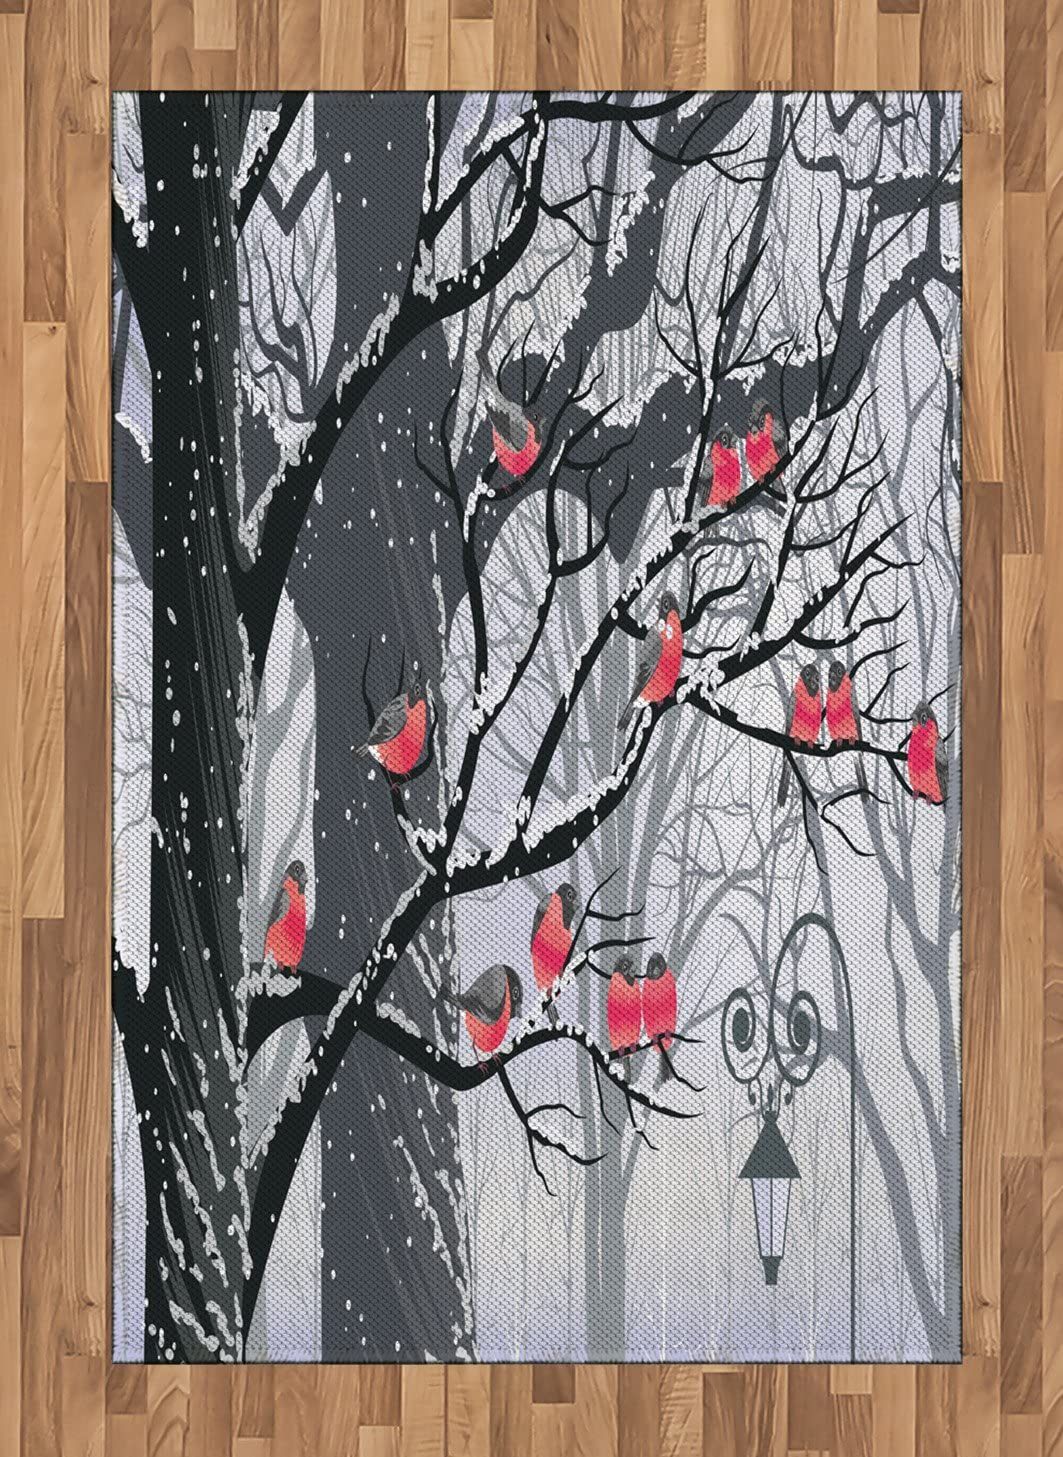 Ambesonne Winter Area Rug, Bullfinches on Trees Winter City Park Snow Cold Weather Immigrant Birds Design, Flat Woven Accent Rug for Living Room Bedroom Dining Room, 4' X 5.7', Grey Coral